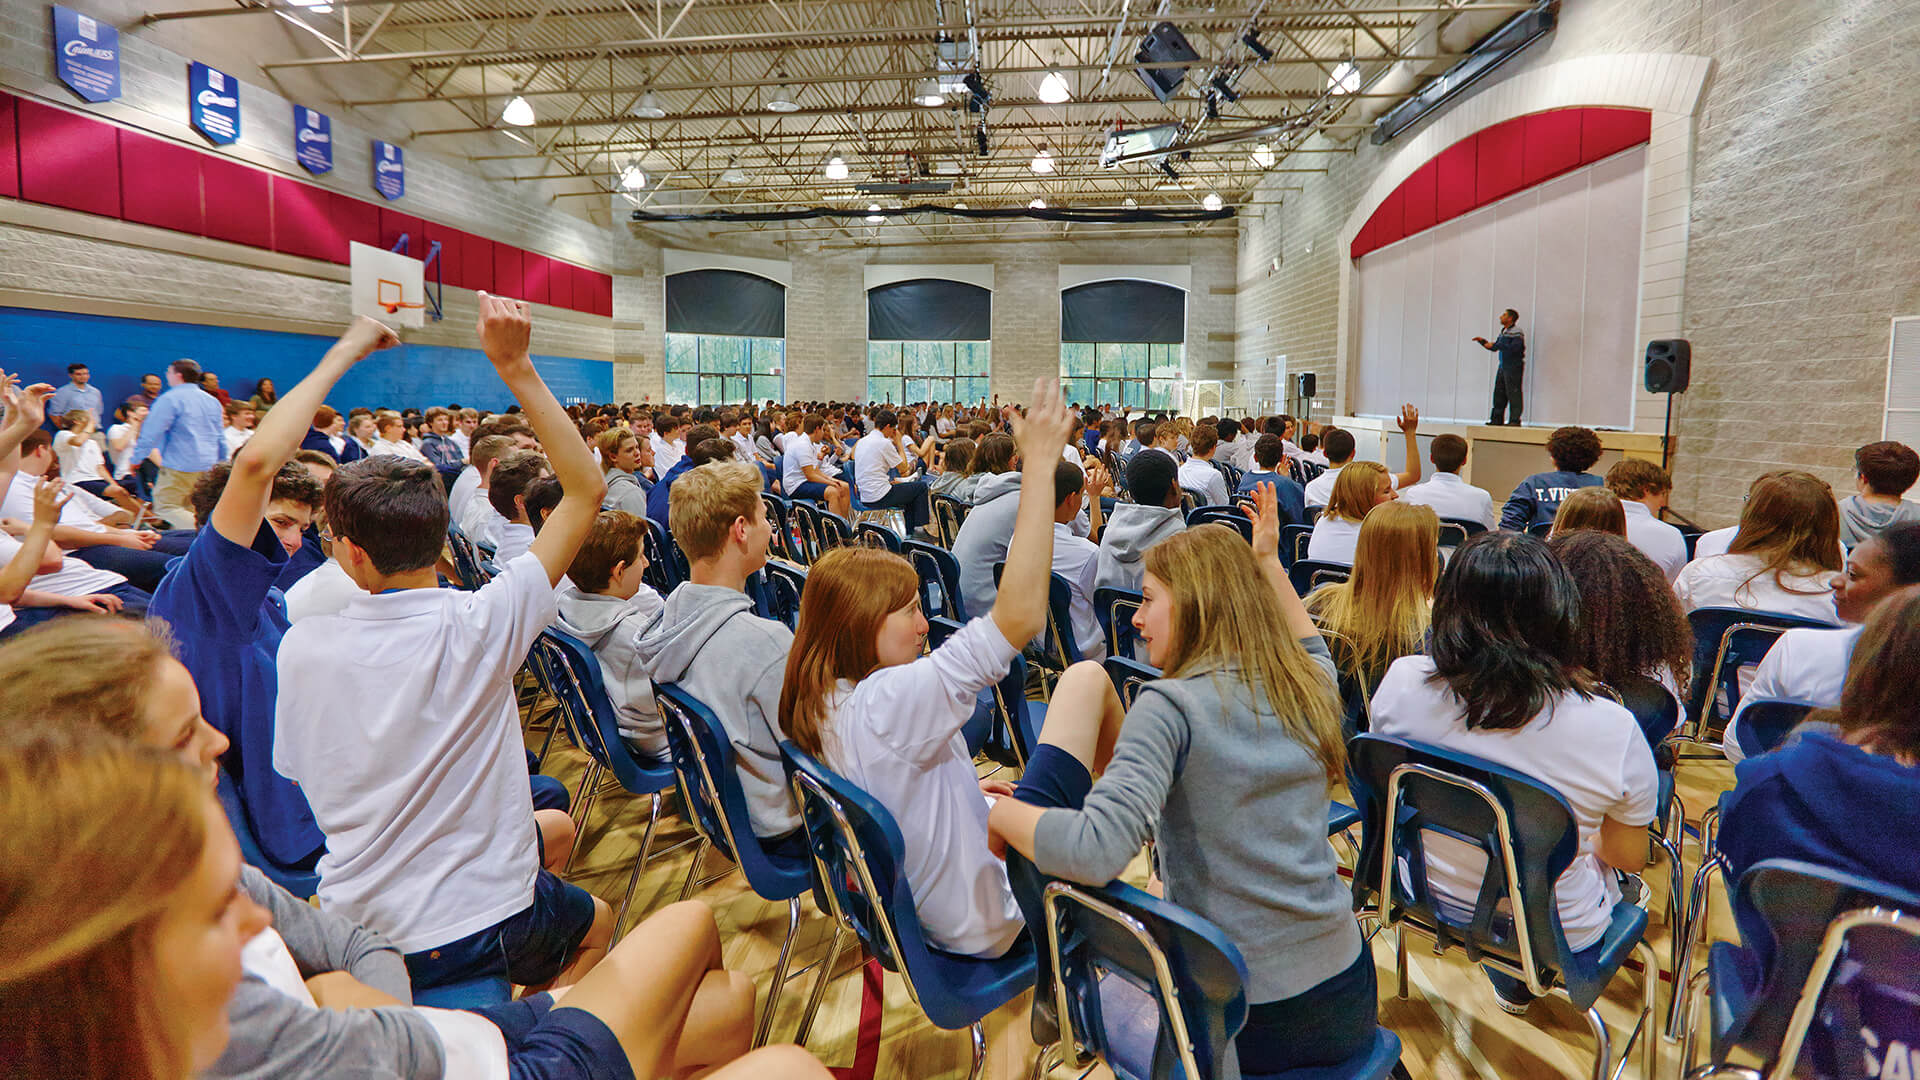 students enthusiastically raising their hands in an assembly